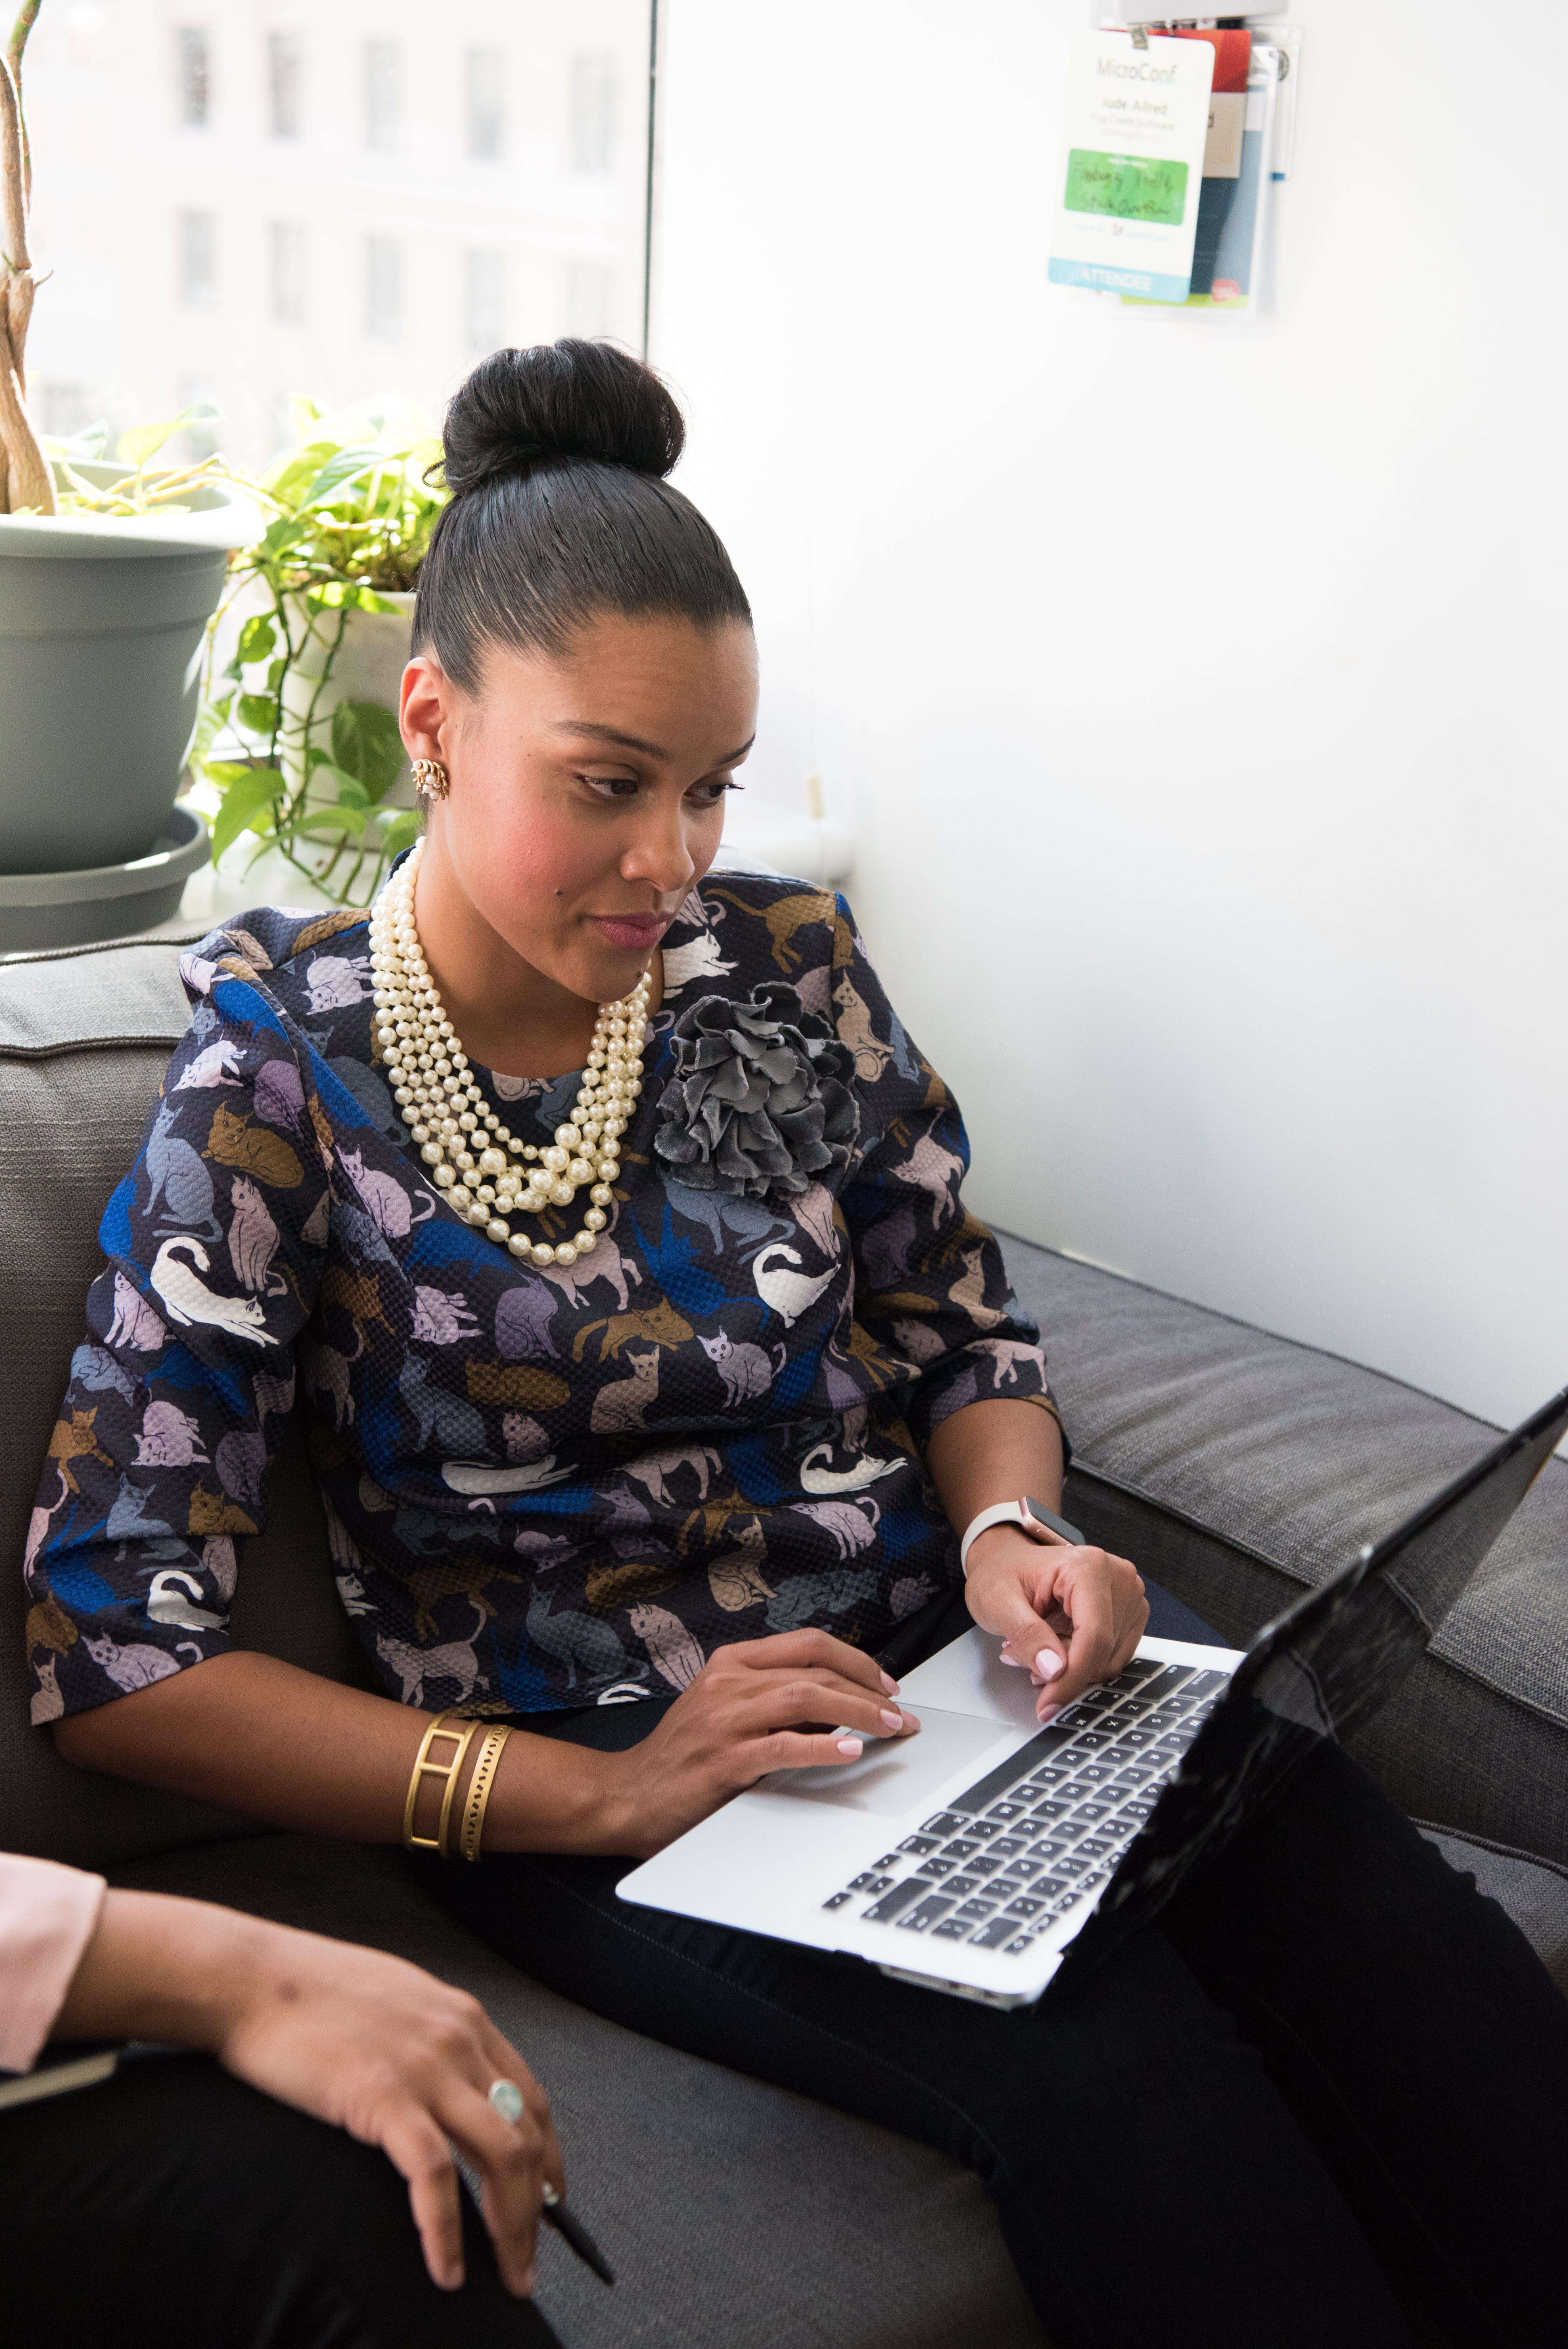 Woman Using Black and Gray Laptop Computer